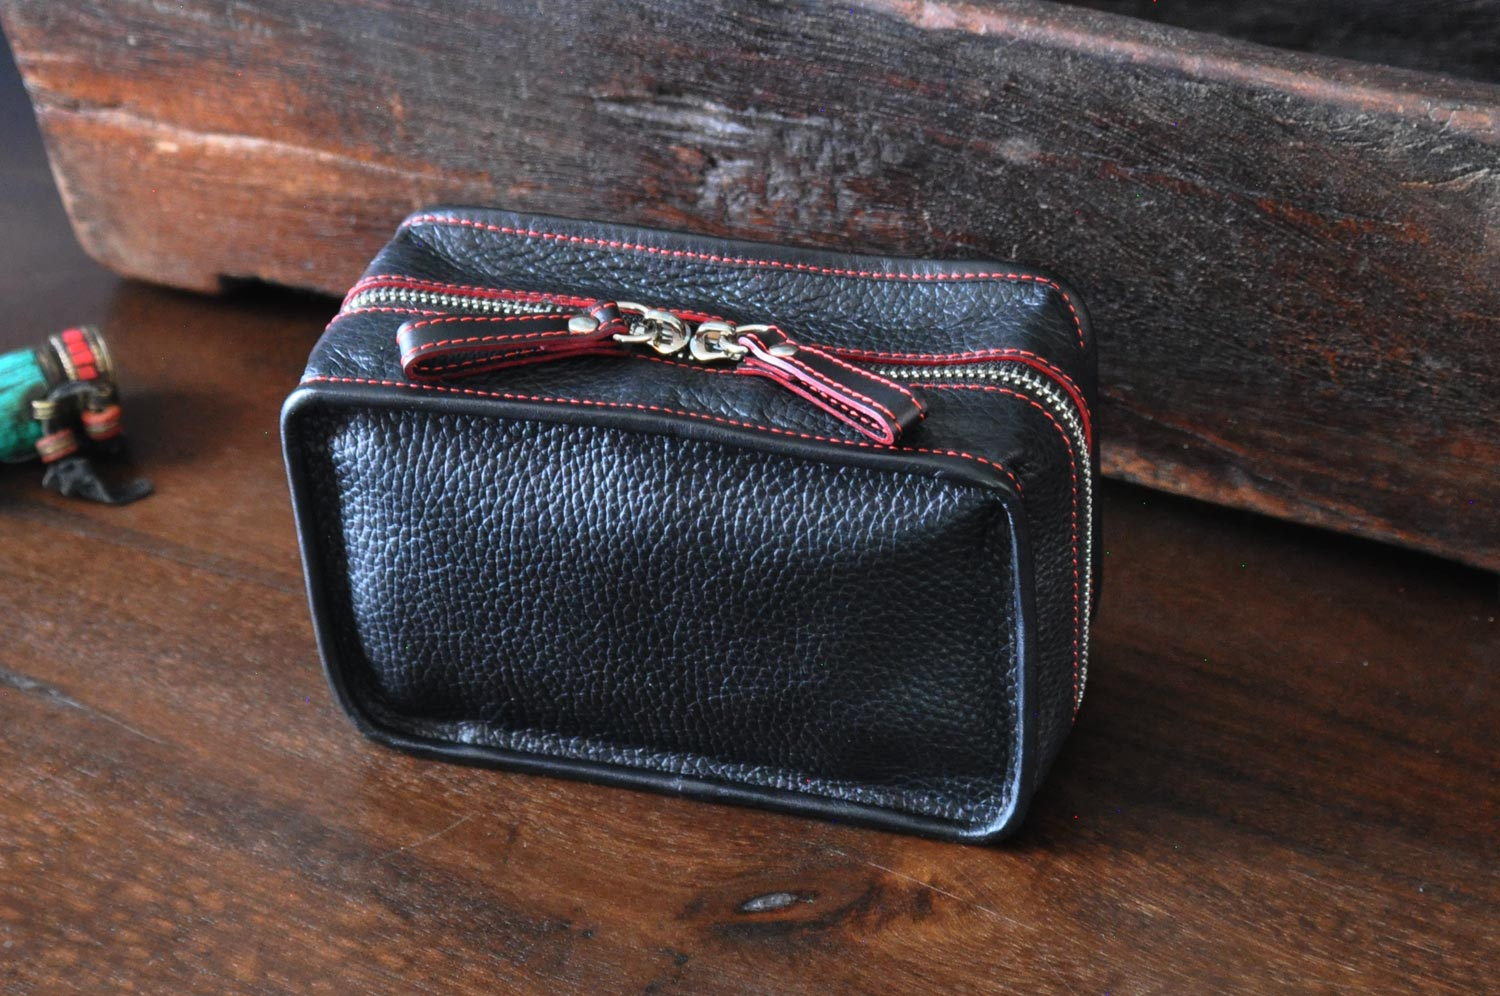 Leather Dopp Case for travel and tech items